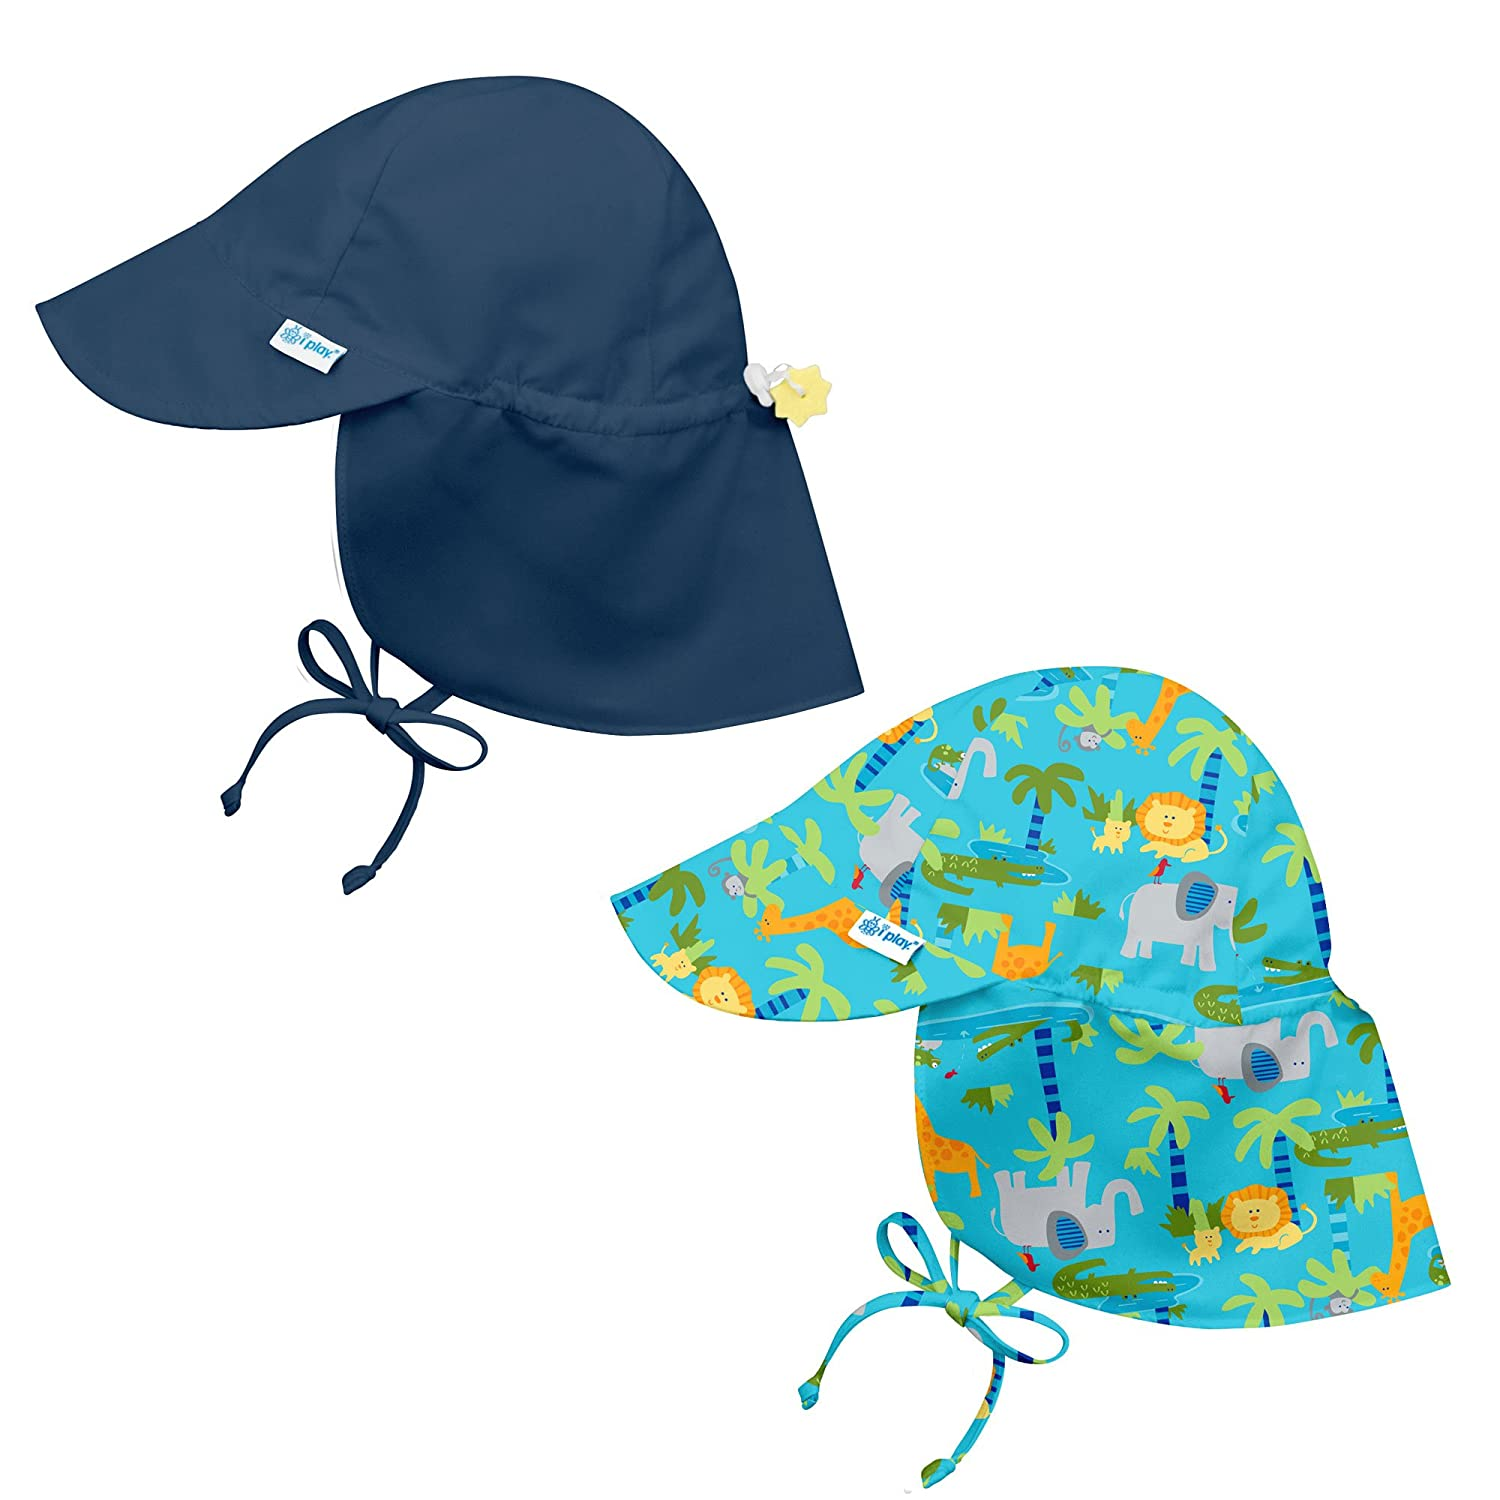 272d1dc47e8 FLAP SUN HAT BUNDLE INCLUDES  1 solid navy blue i play sun protection sun  hat and 1 aqua jungle sun hat. i play baby and toddler sun protection hats  are ...